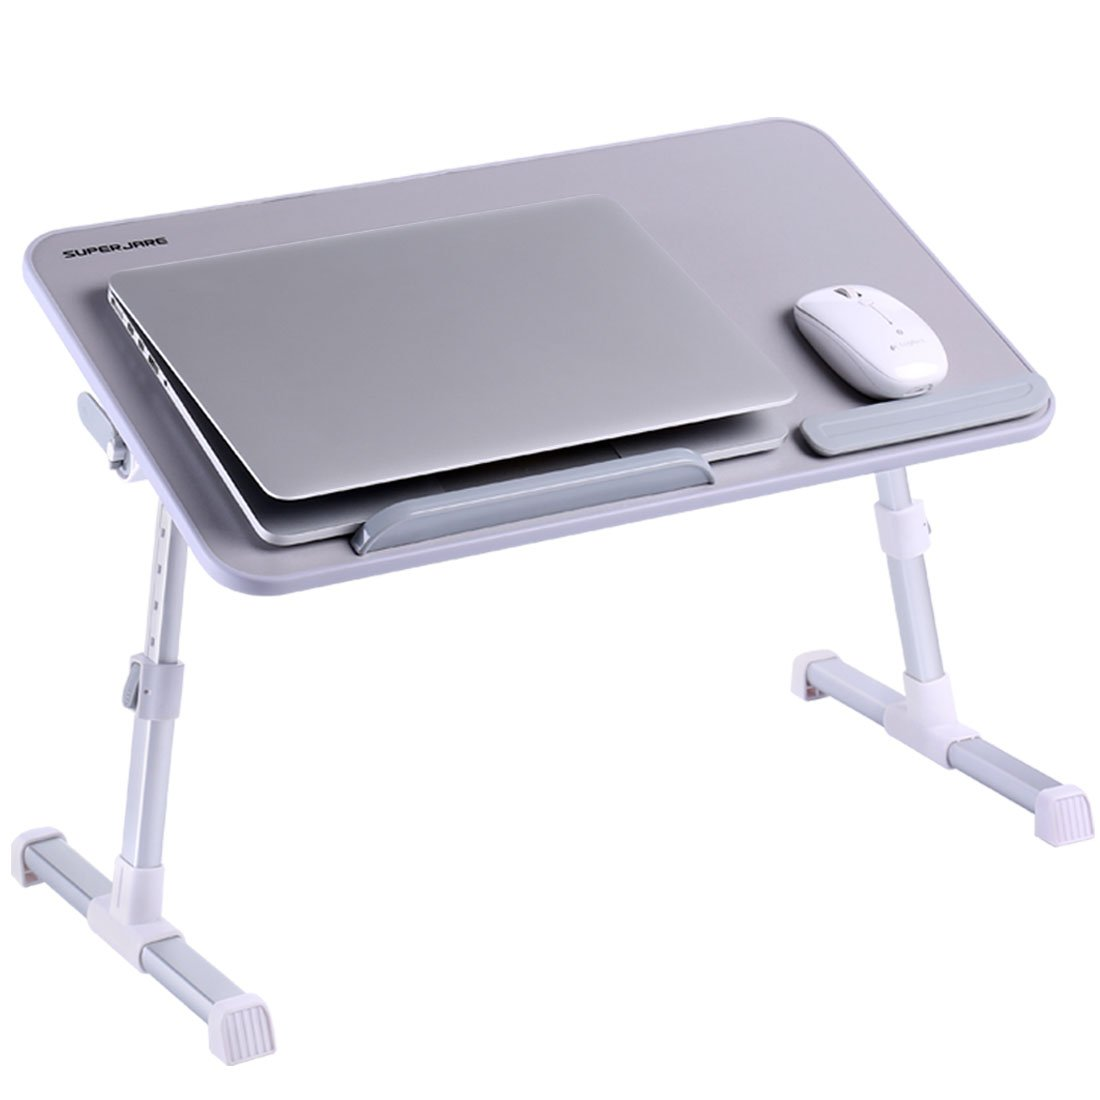 Portable Laptop Table by Superjare | Foldable & Durable Design Stand Desk | Adjustable Angle & Height for Bed Couch Floor | Notebook Holder | Breakfast Tray - Gray